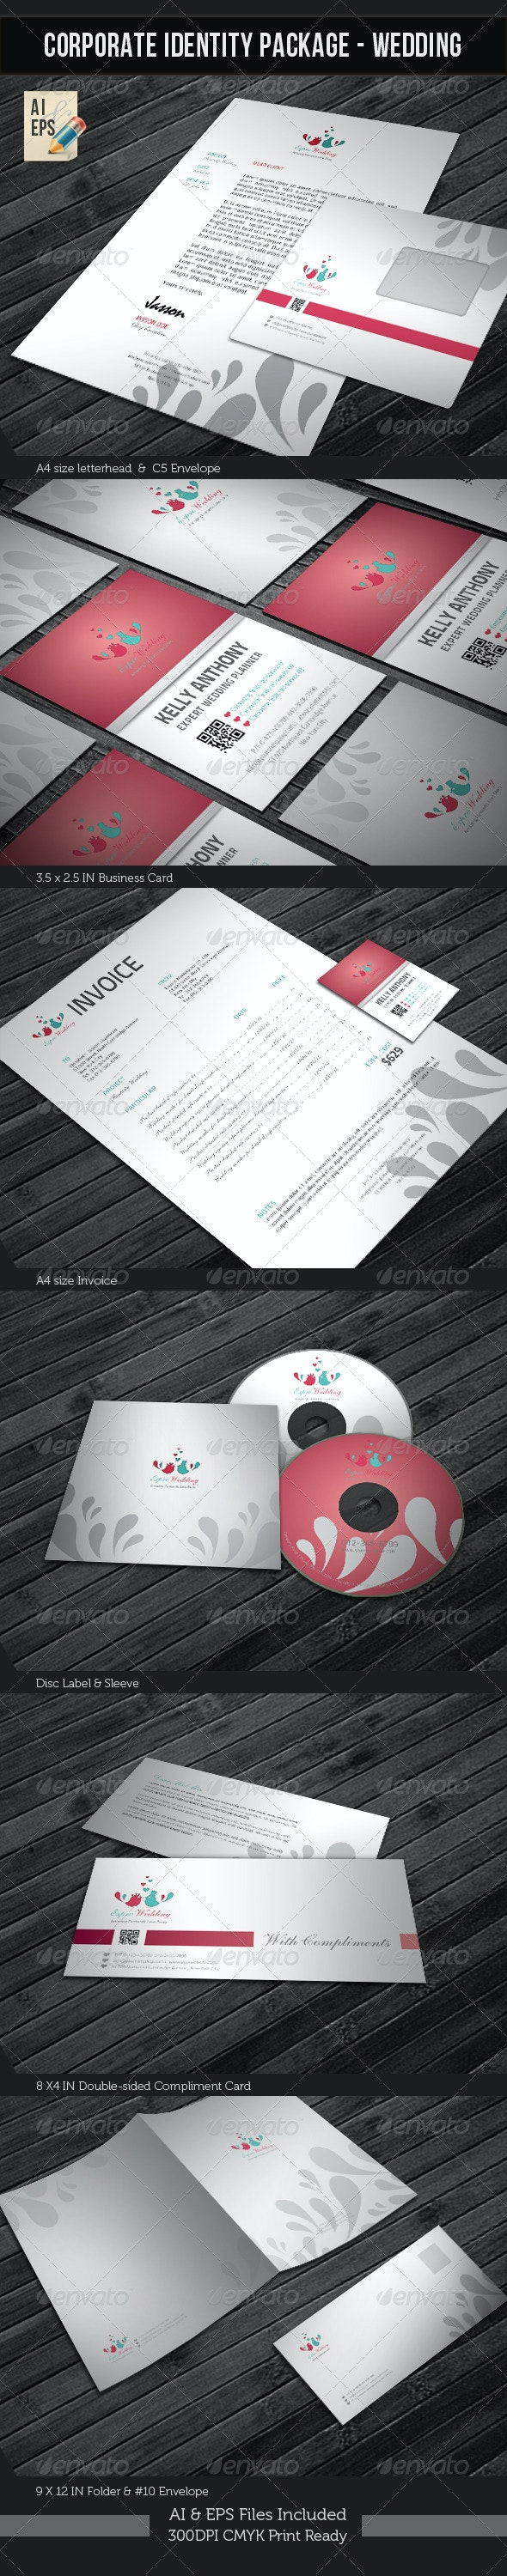 Corporate Identity Package - Wedding Planner - Stationery Print Templates